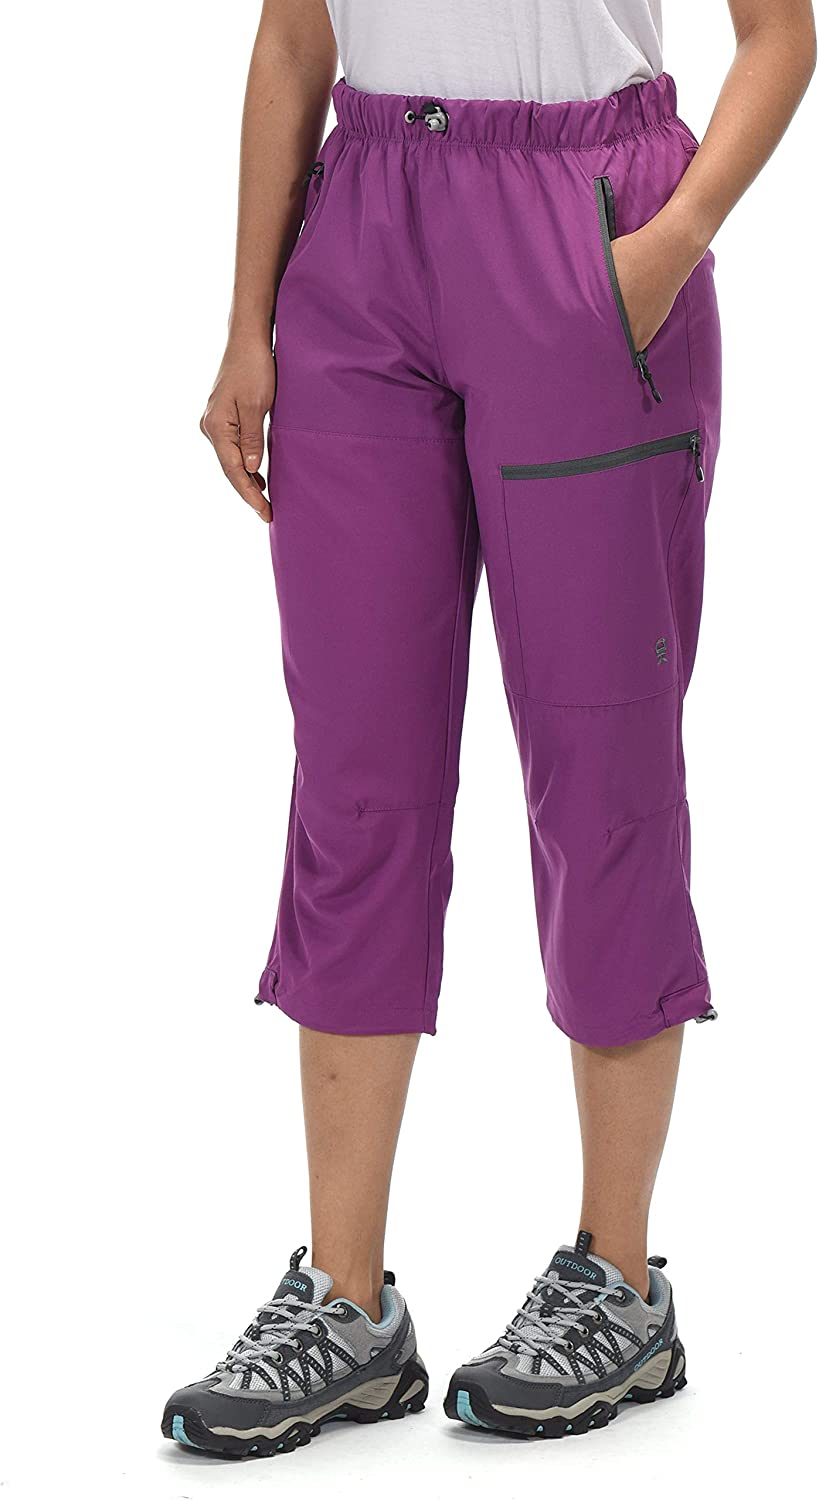 Little Donkey Andy Womens Quick Dry 3//4 Pants Capri Shorts Lightweight Hiking Travel Casual